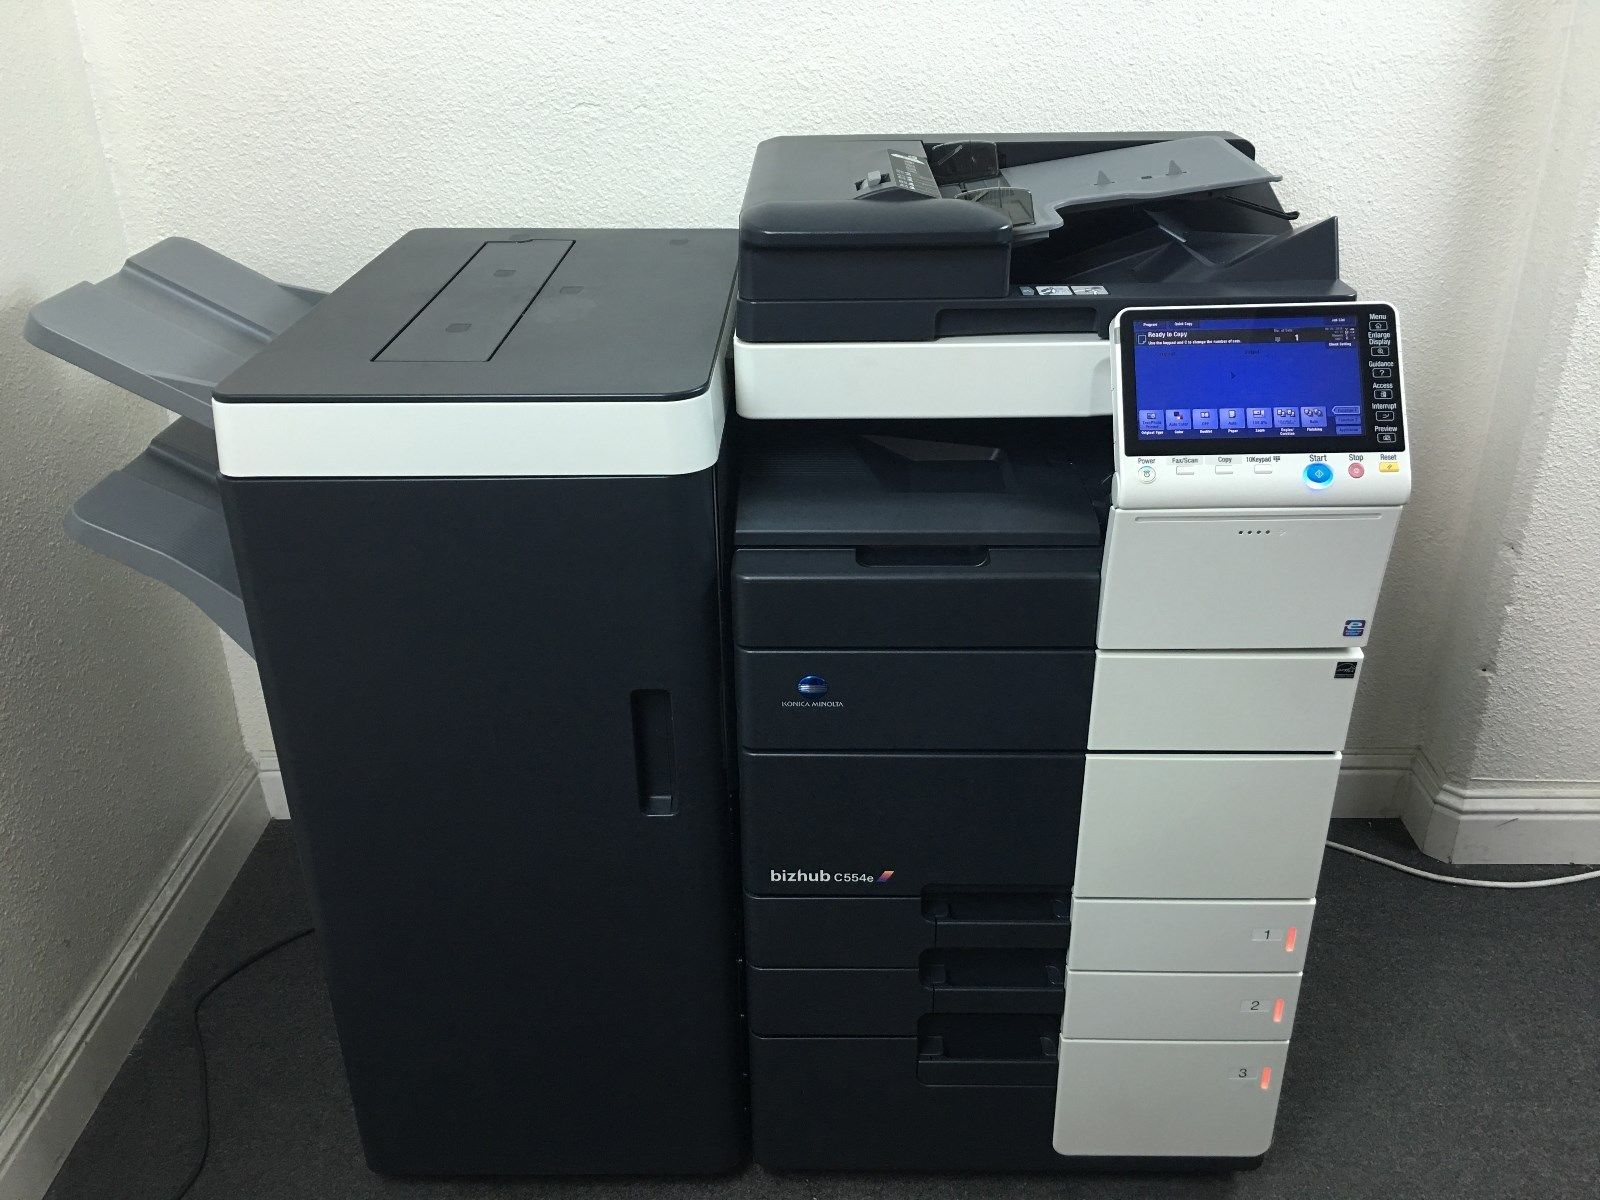 Konica Minolta Bizhub C554e Color Copier Printer Scanner Network LOW 258k total by Koinca Minolta